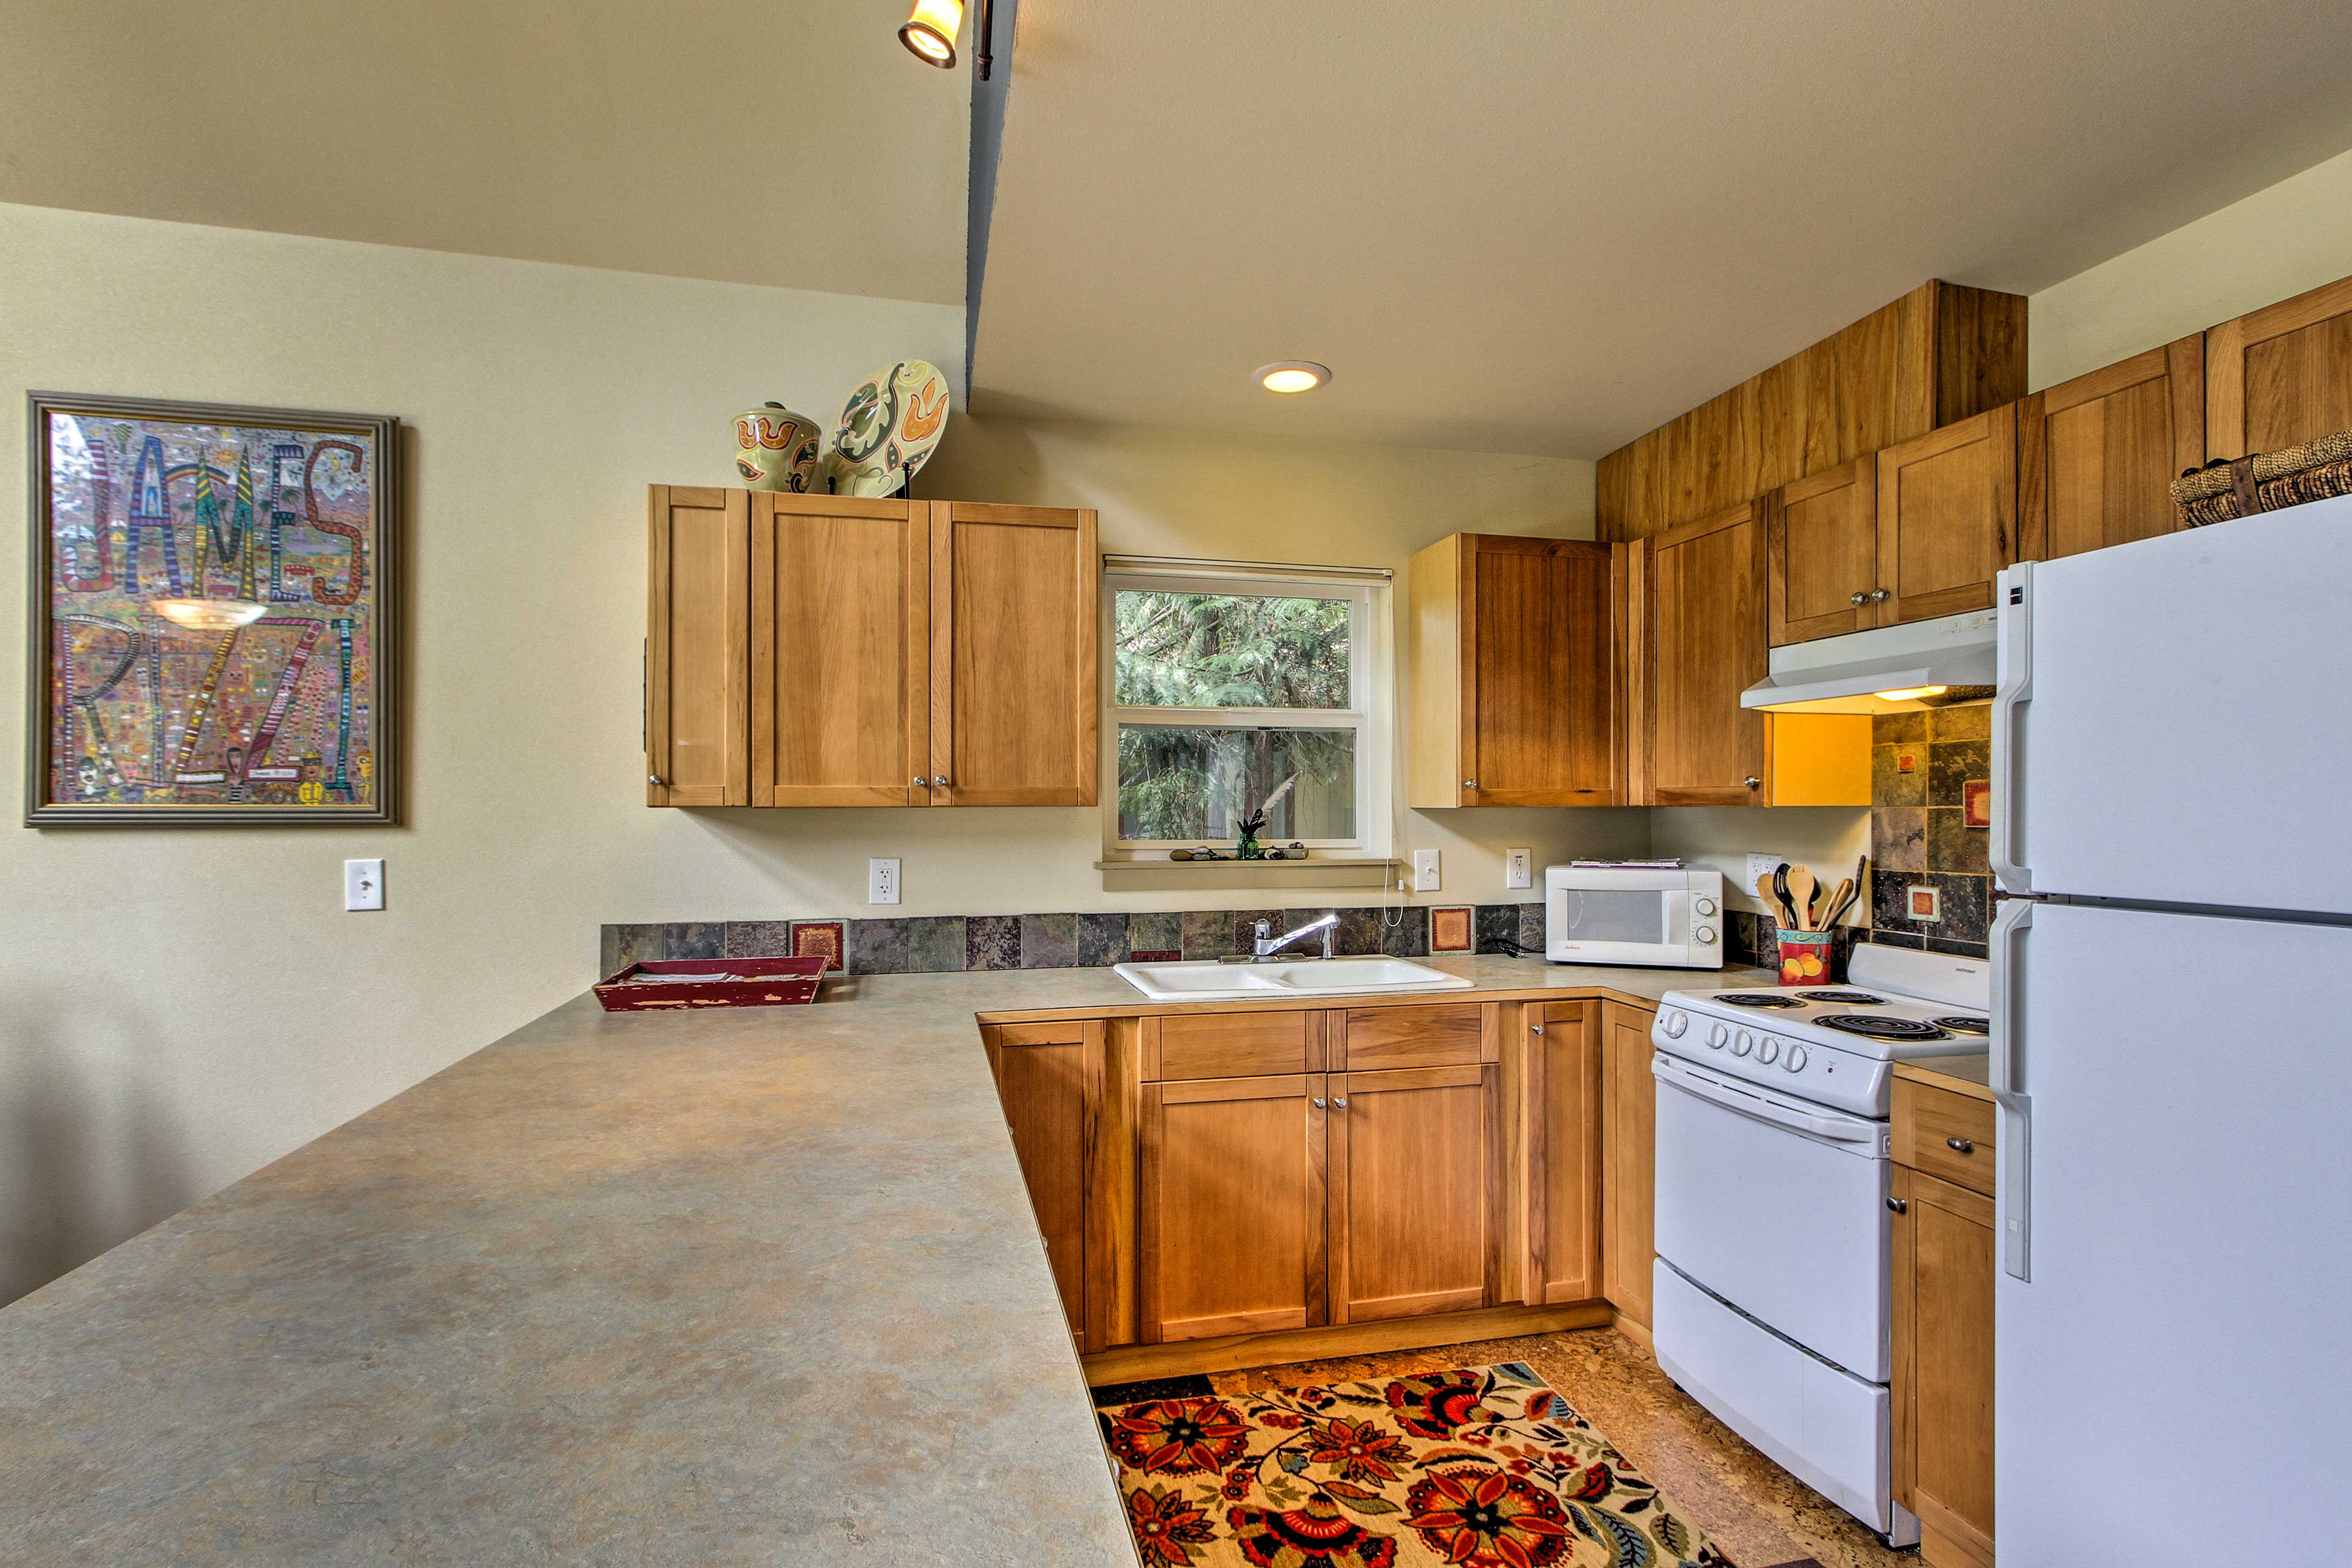 The kitchen is well-equipped with modern appliances.